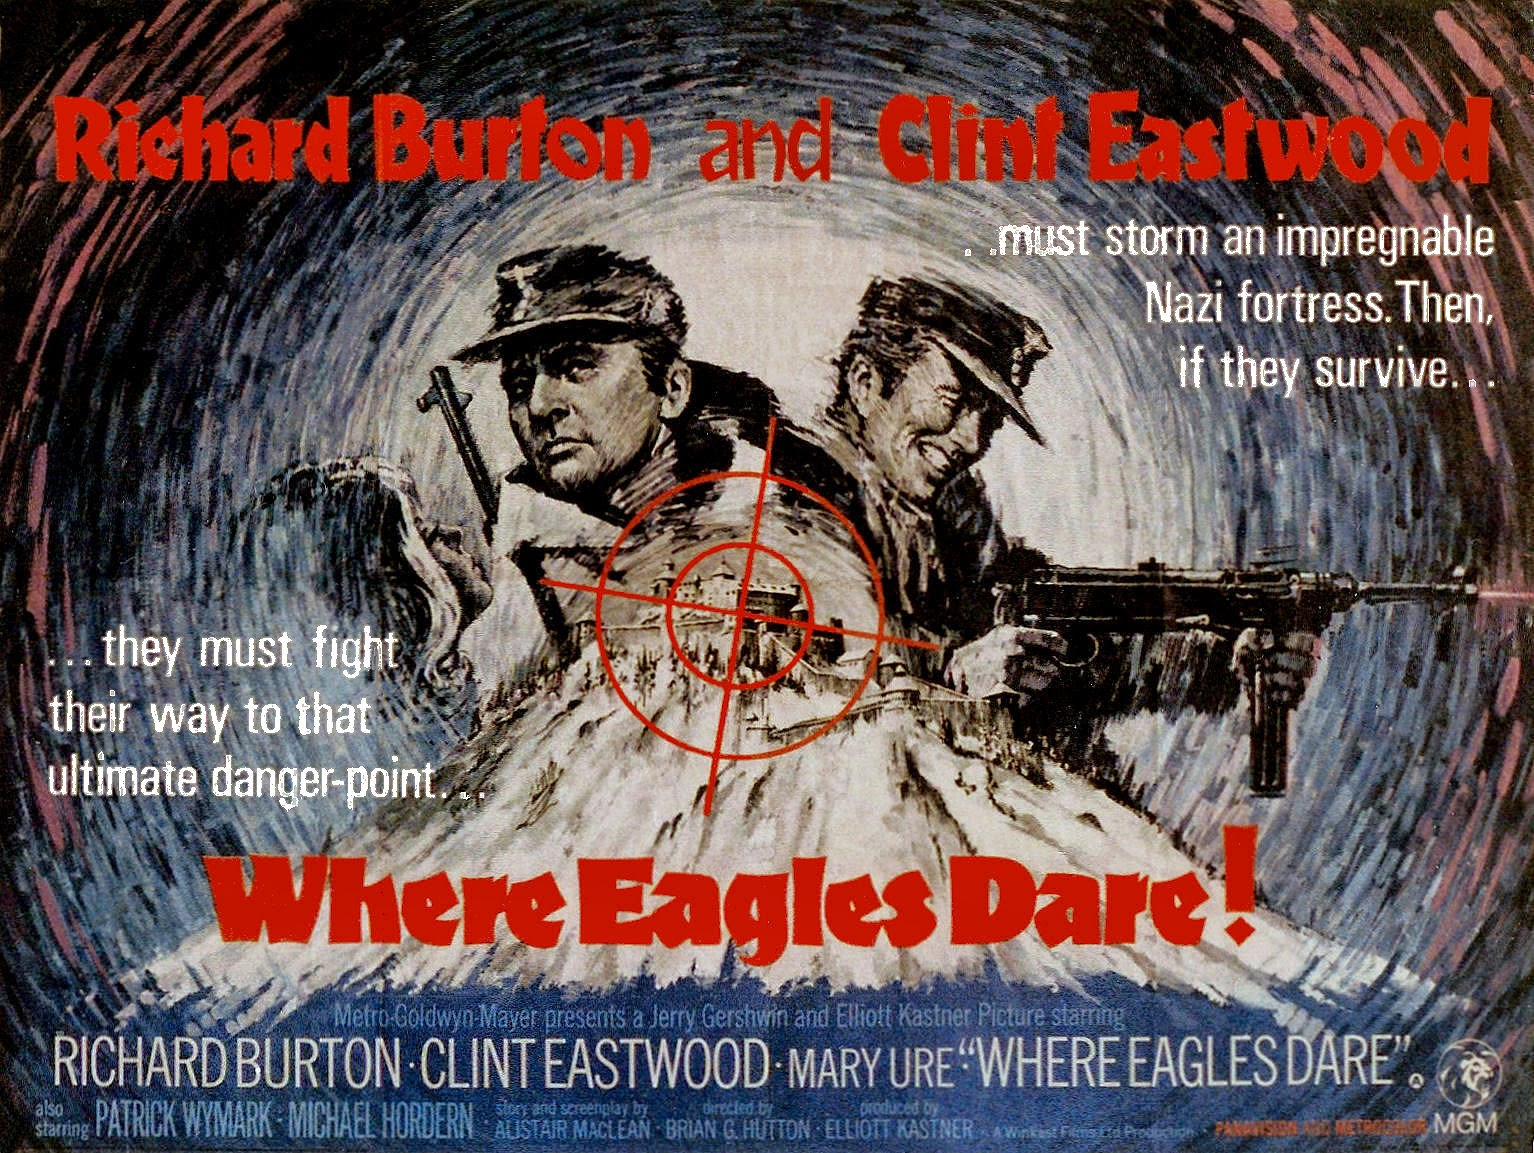 LEN WISEMAN TO DIRECT WHERE EAGLES DARE REMAKE